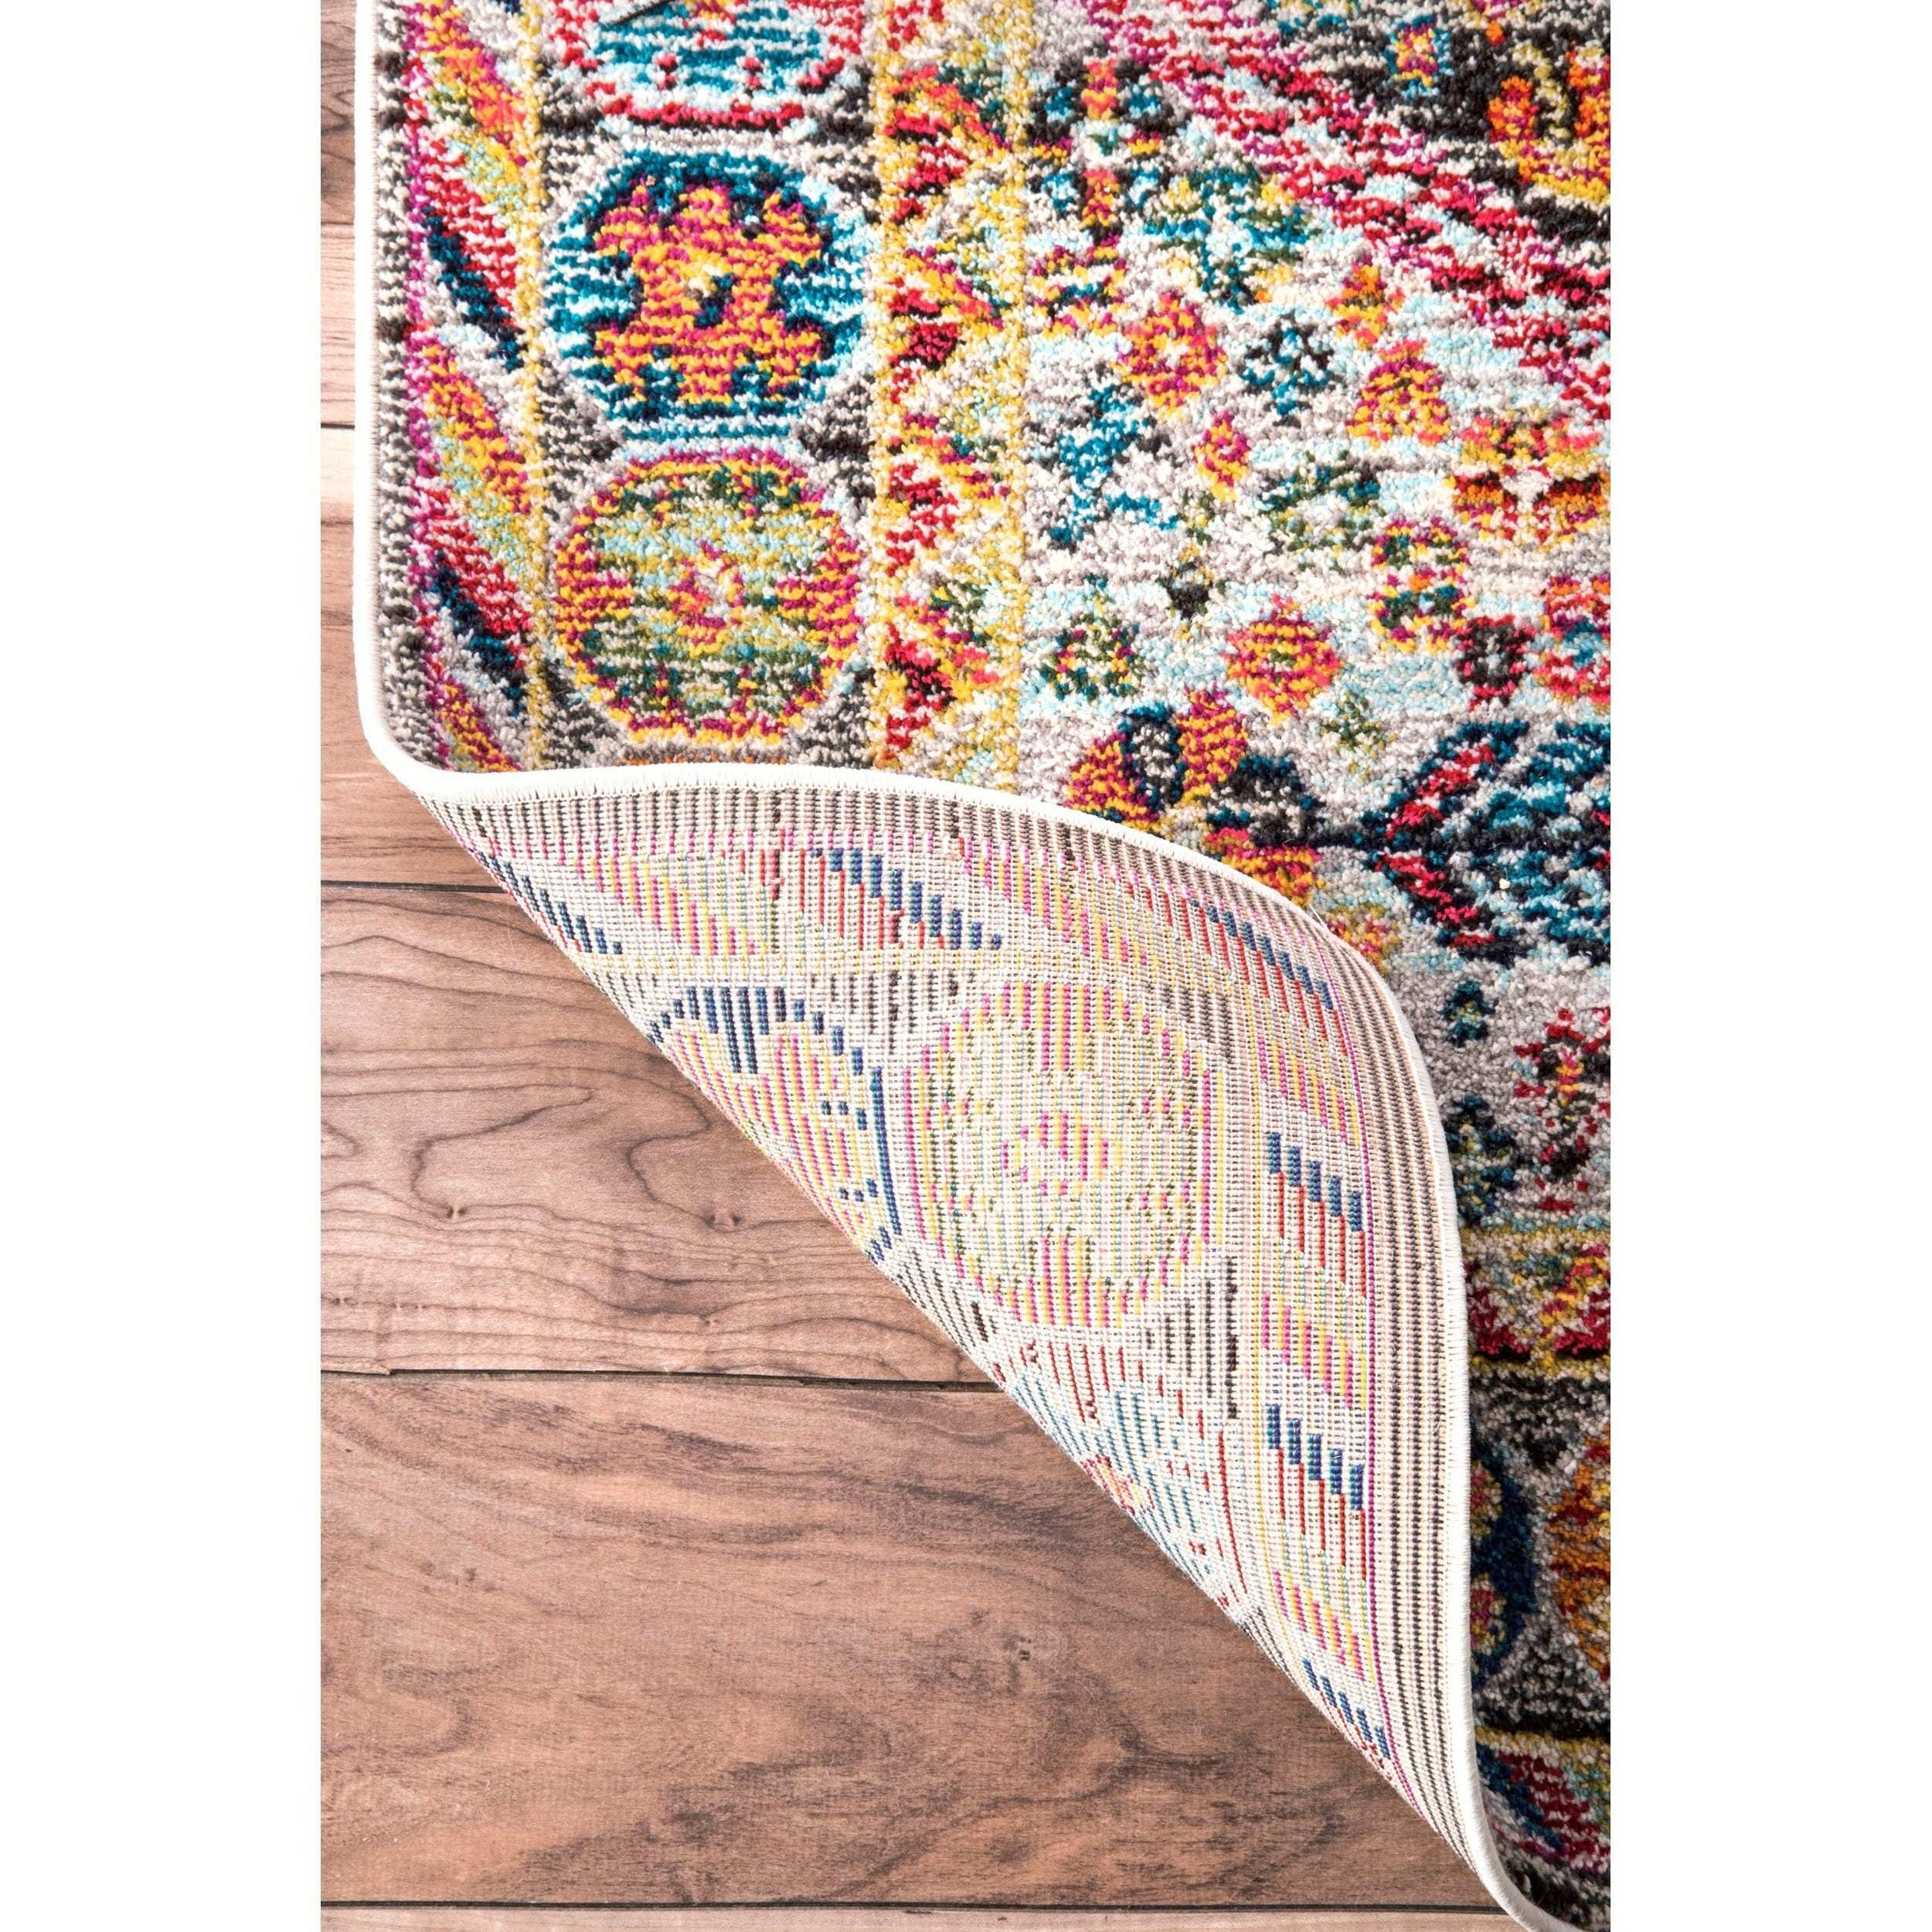 Floral Print Wall to Wall Carpet Unique Shop Nuloom Persian Traditional Distressed Flower Multicolor Rug 7